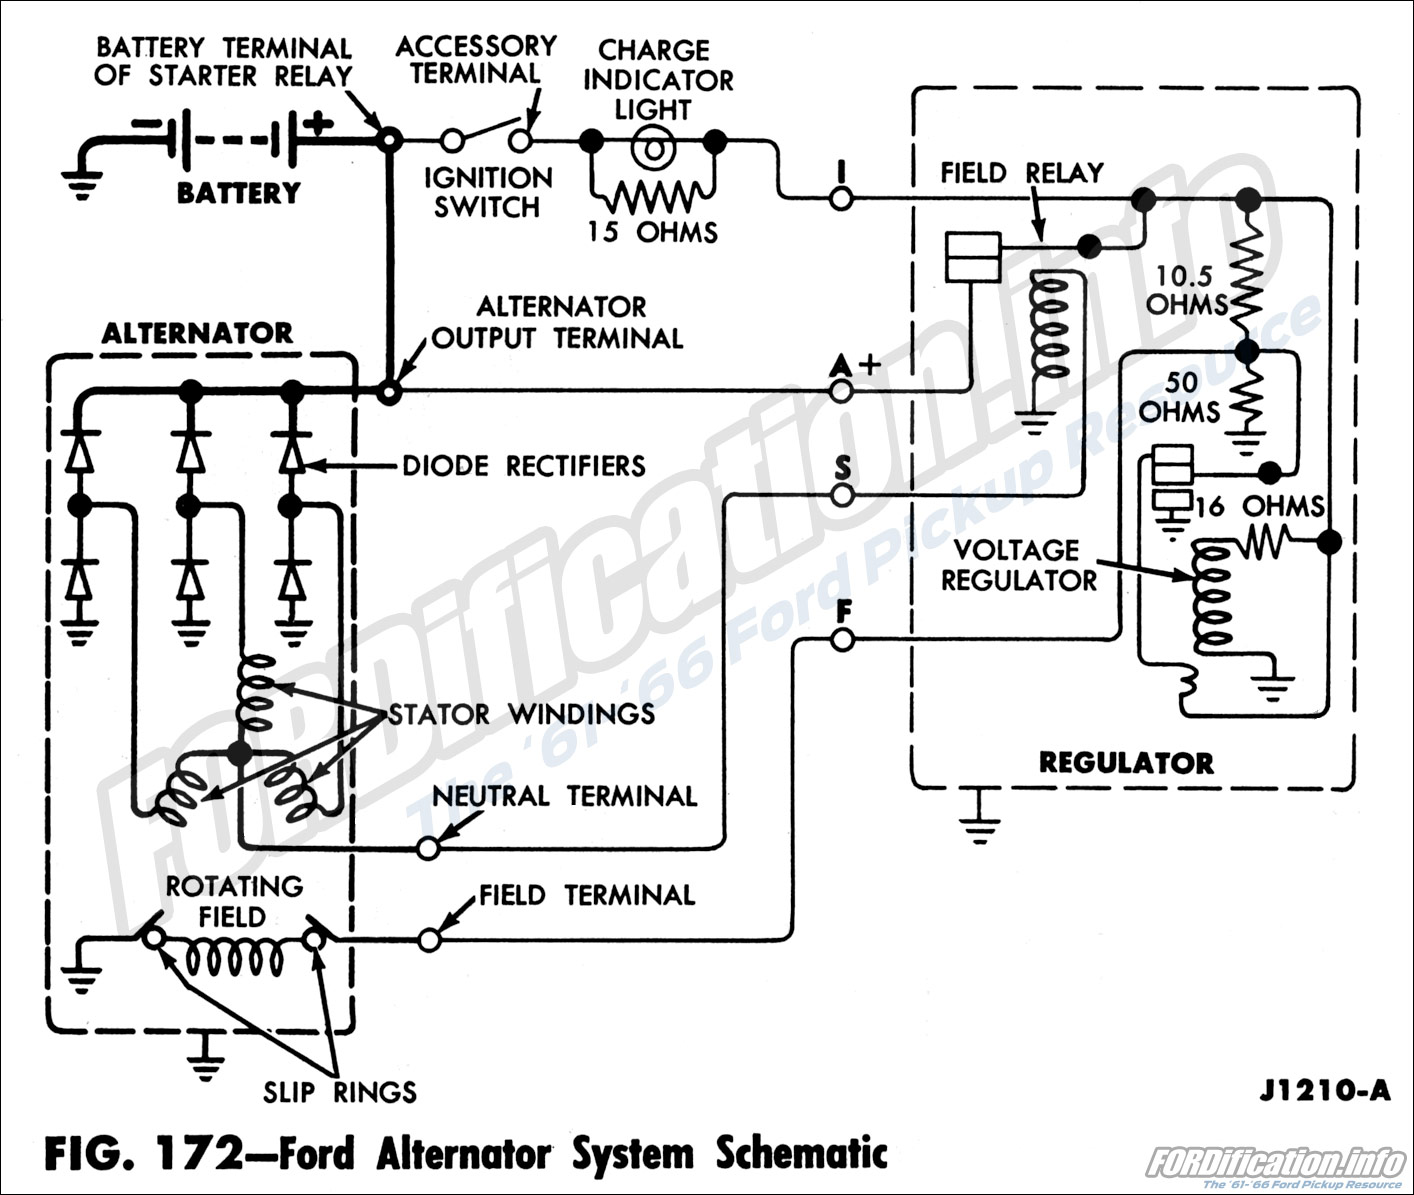 Wiring Schematic For 1963 Ford F 100 Diagram Schematics 1968 Truck Starter Diagrams Fordification Info The 61 66 Pickup